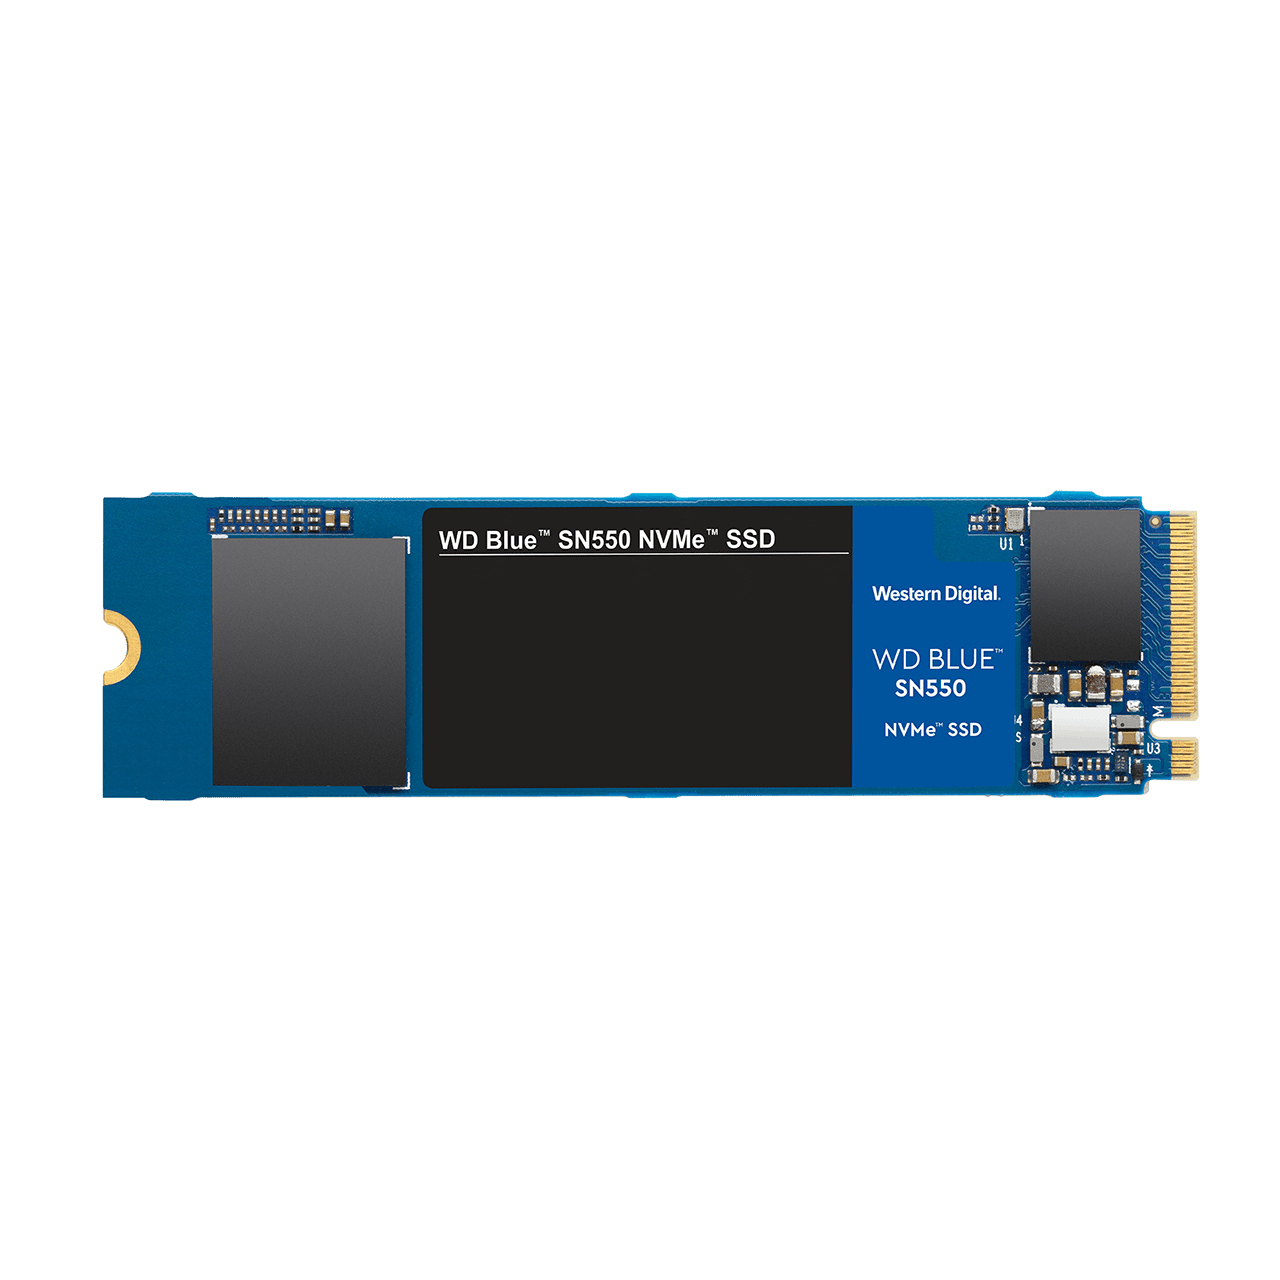 Western Digital WD Blue SN550 NVMe M.2 1000 GB PCI Express 3.0 3D NAND